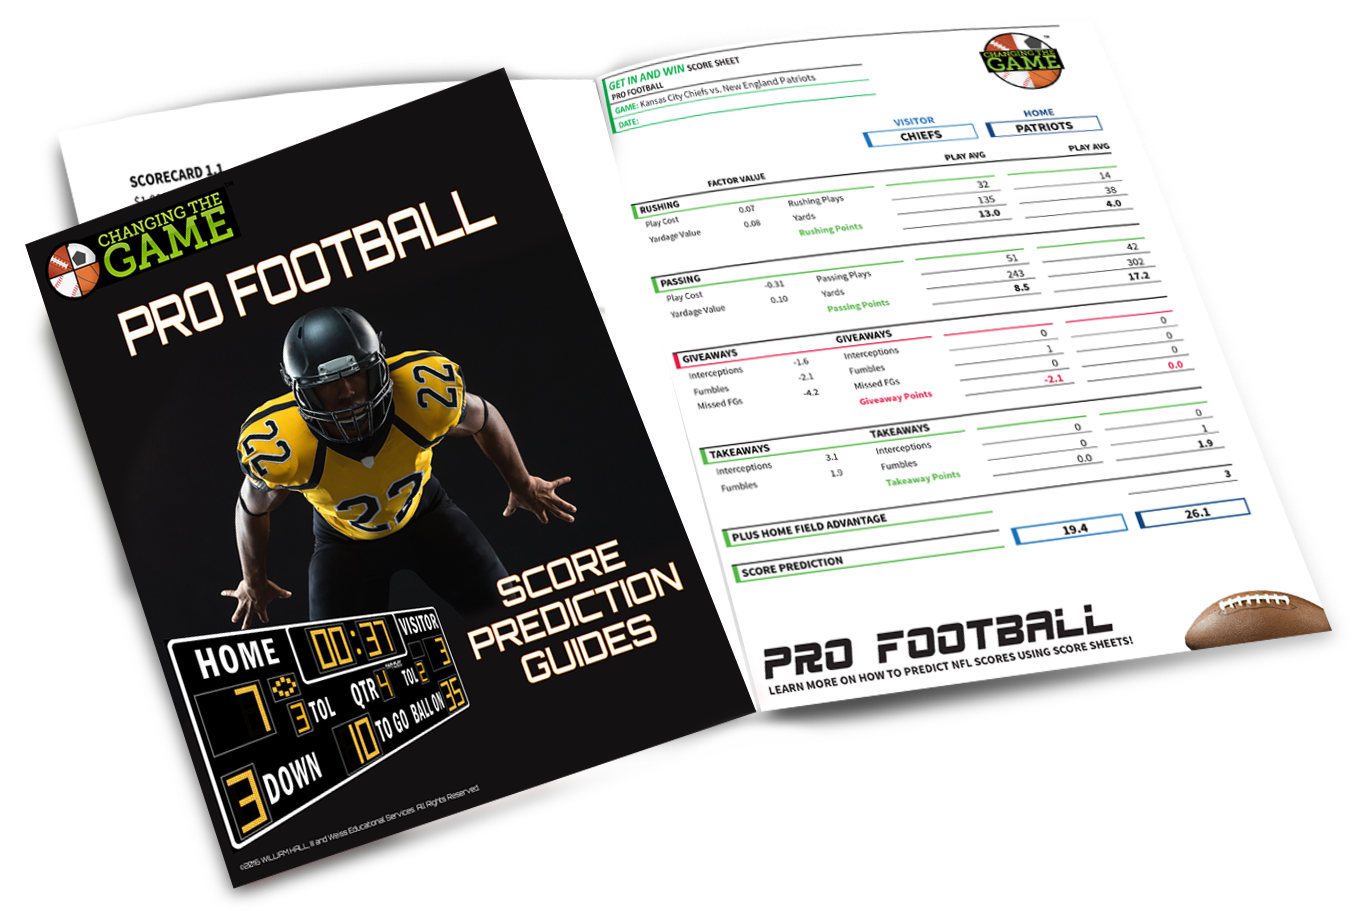 Pro football score prediction guide